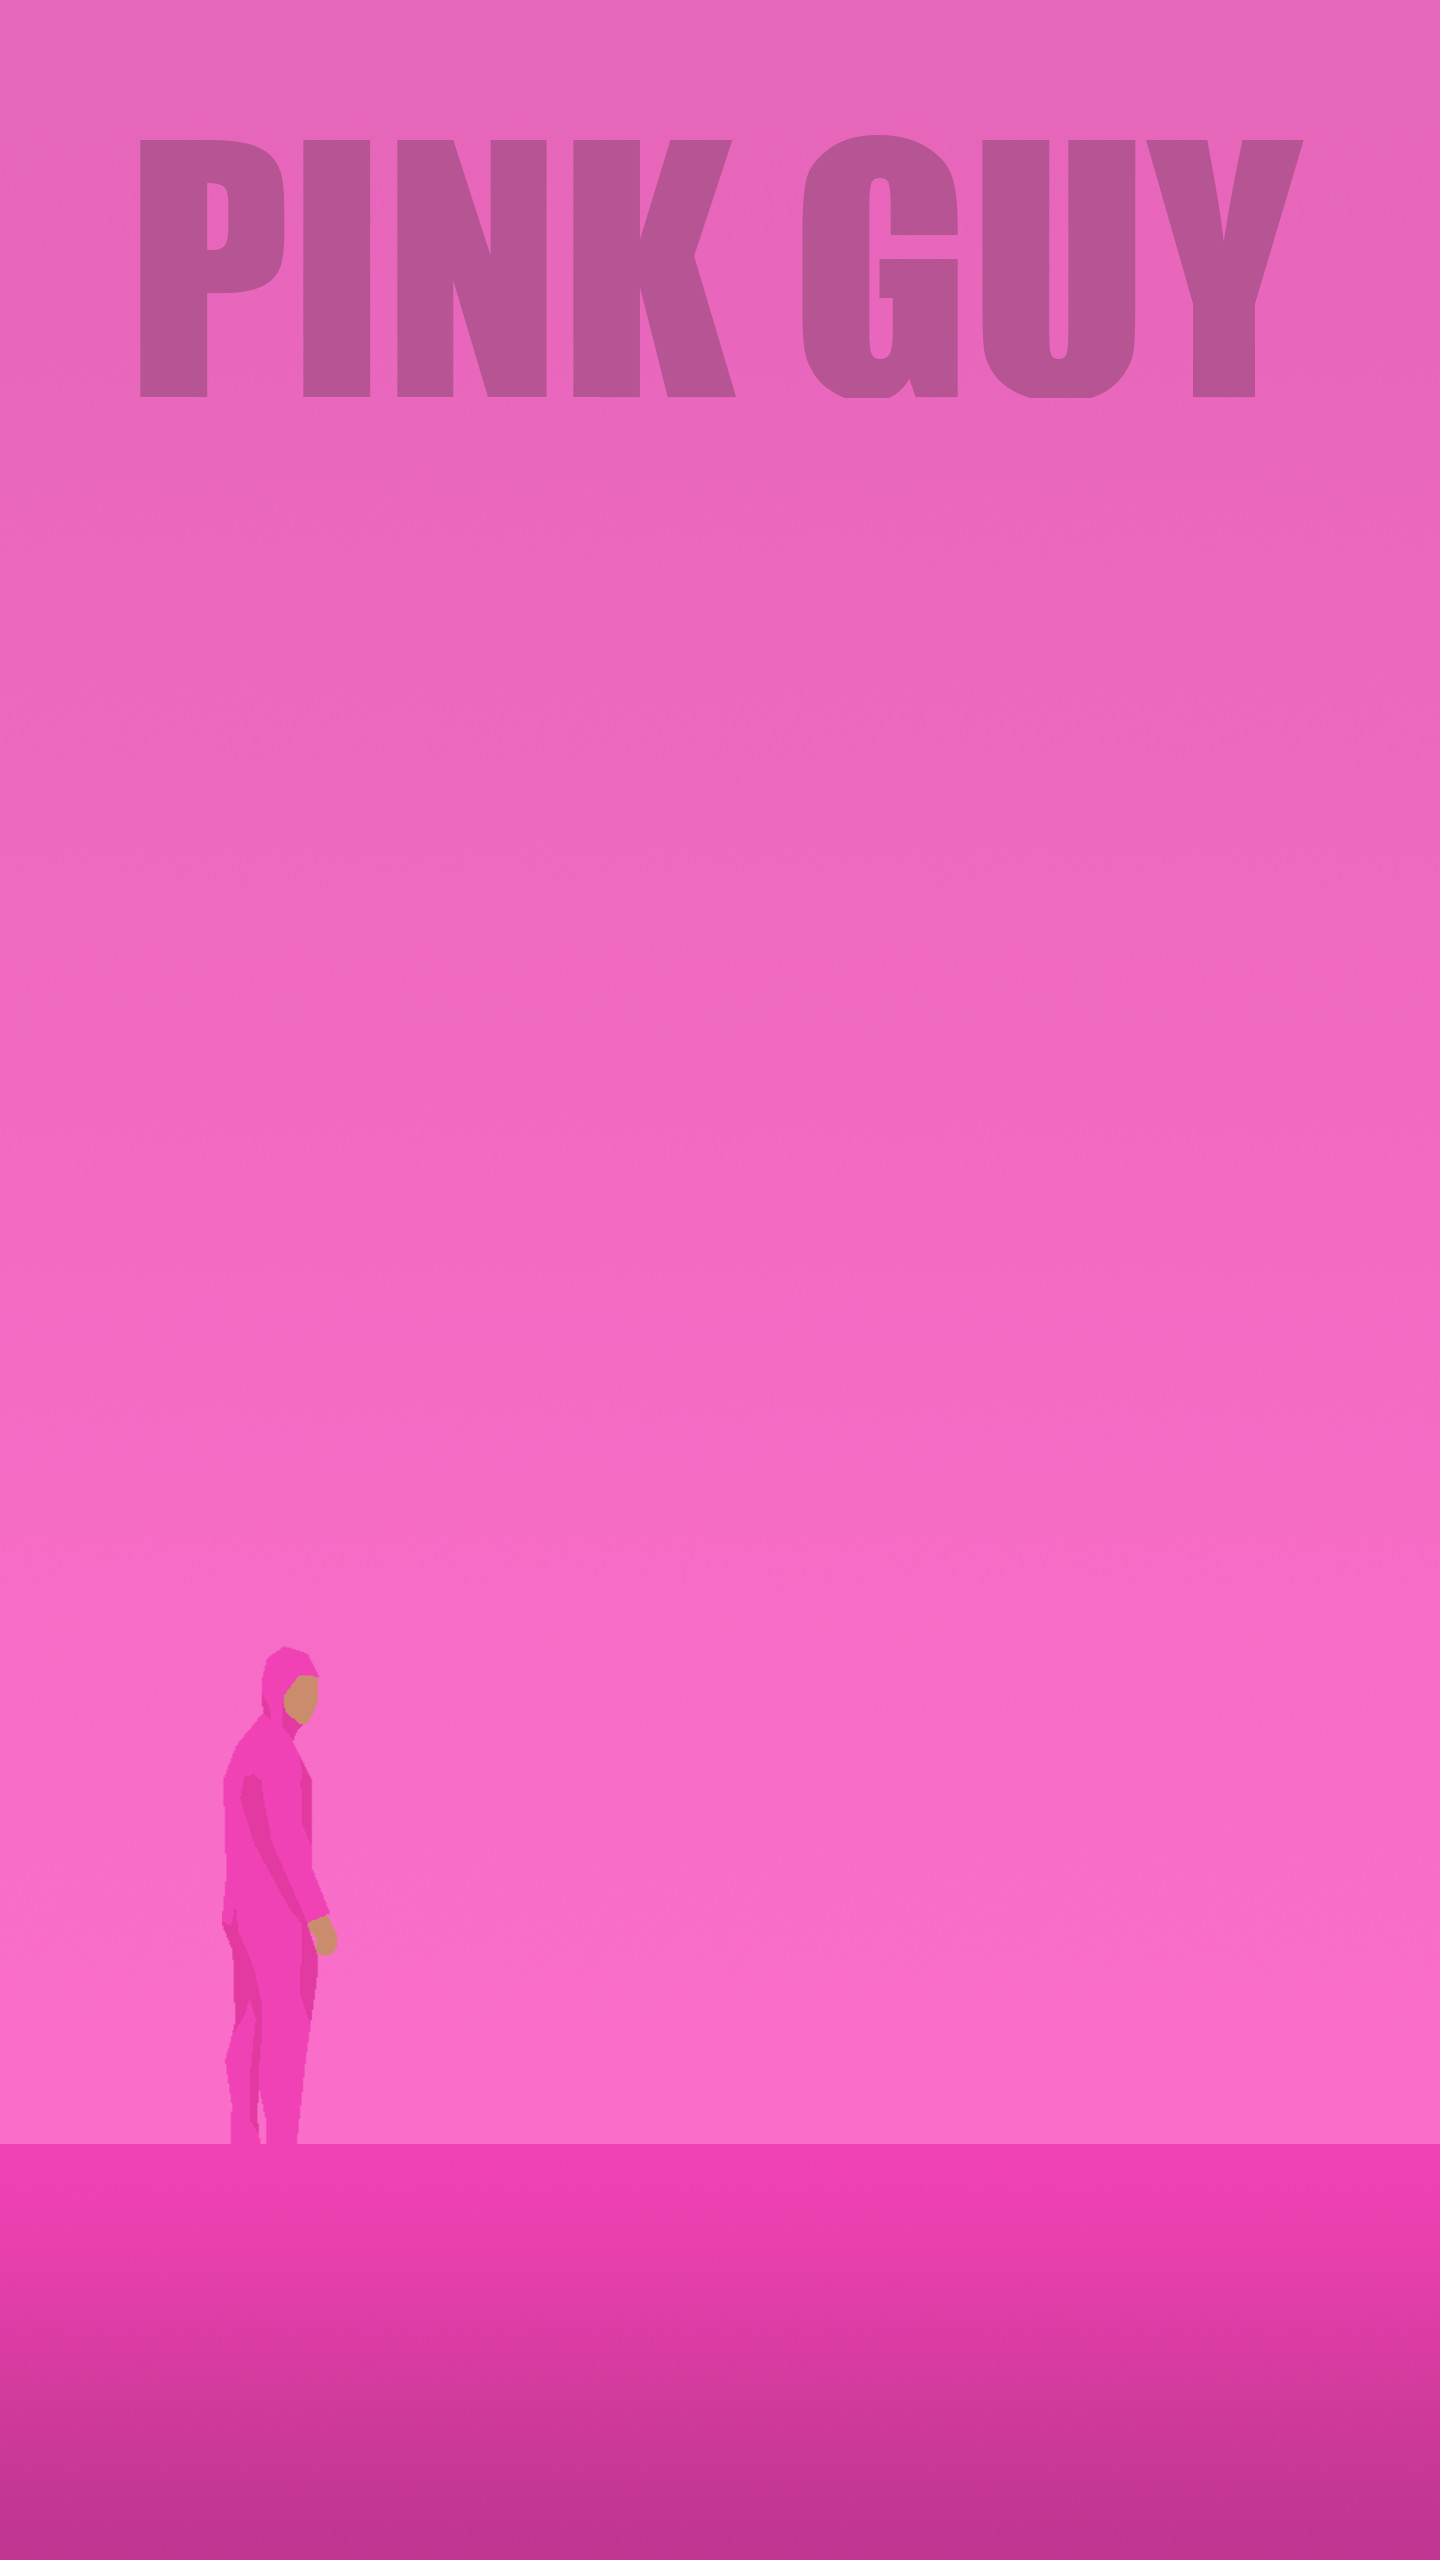 Pink Guy desktop and mobile wallpapers